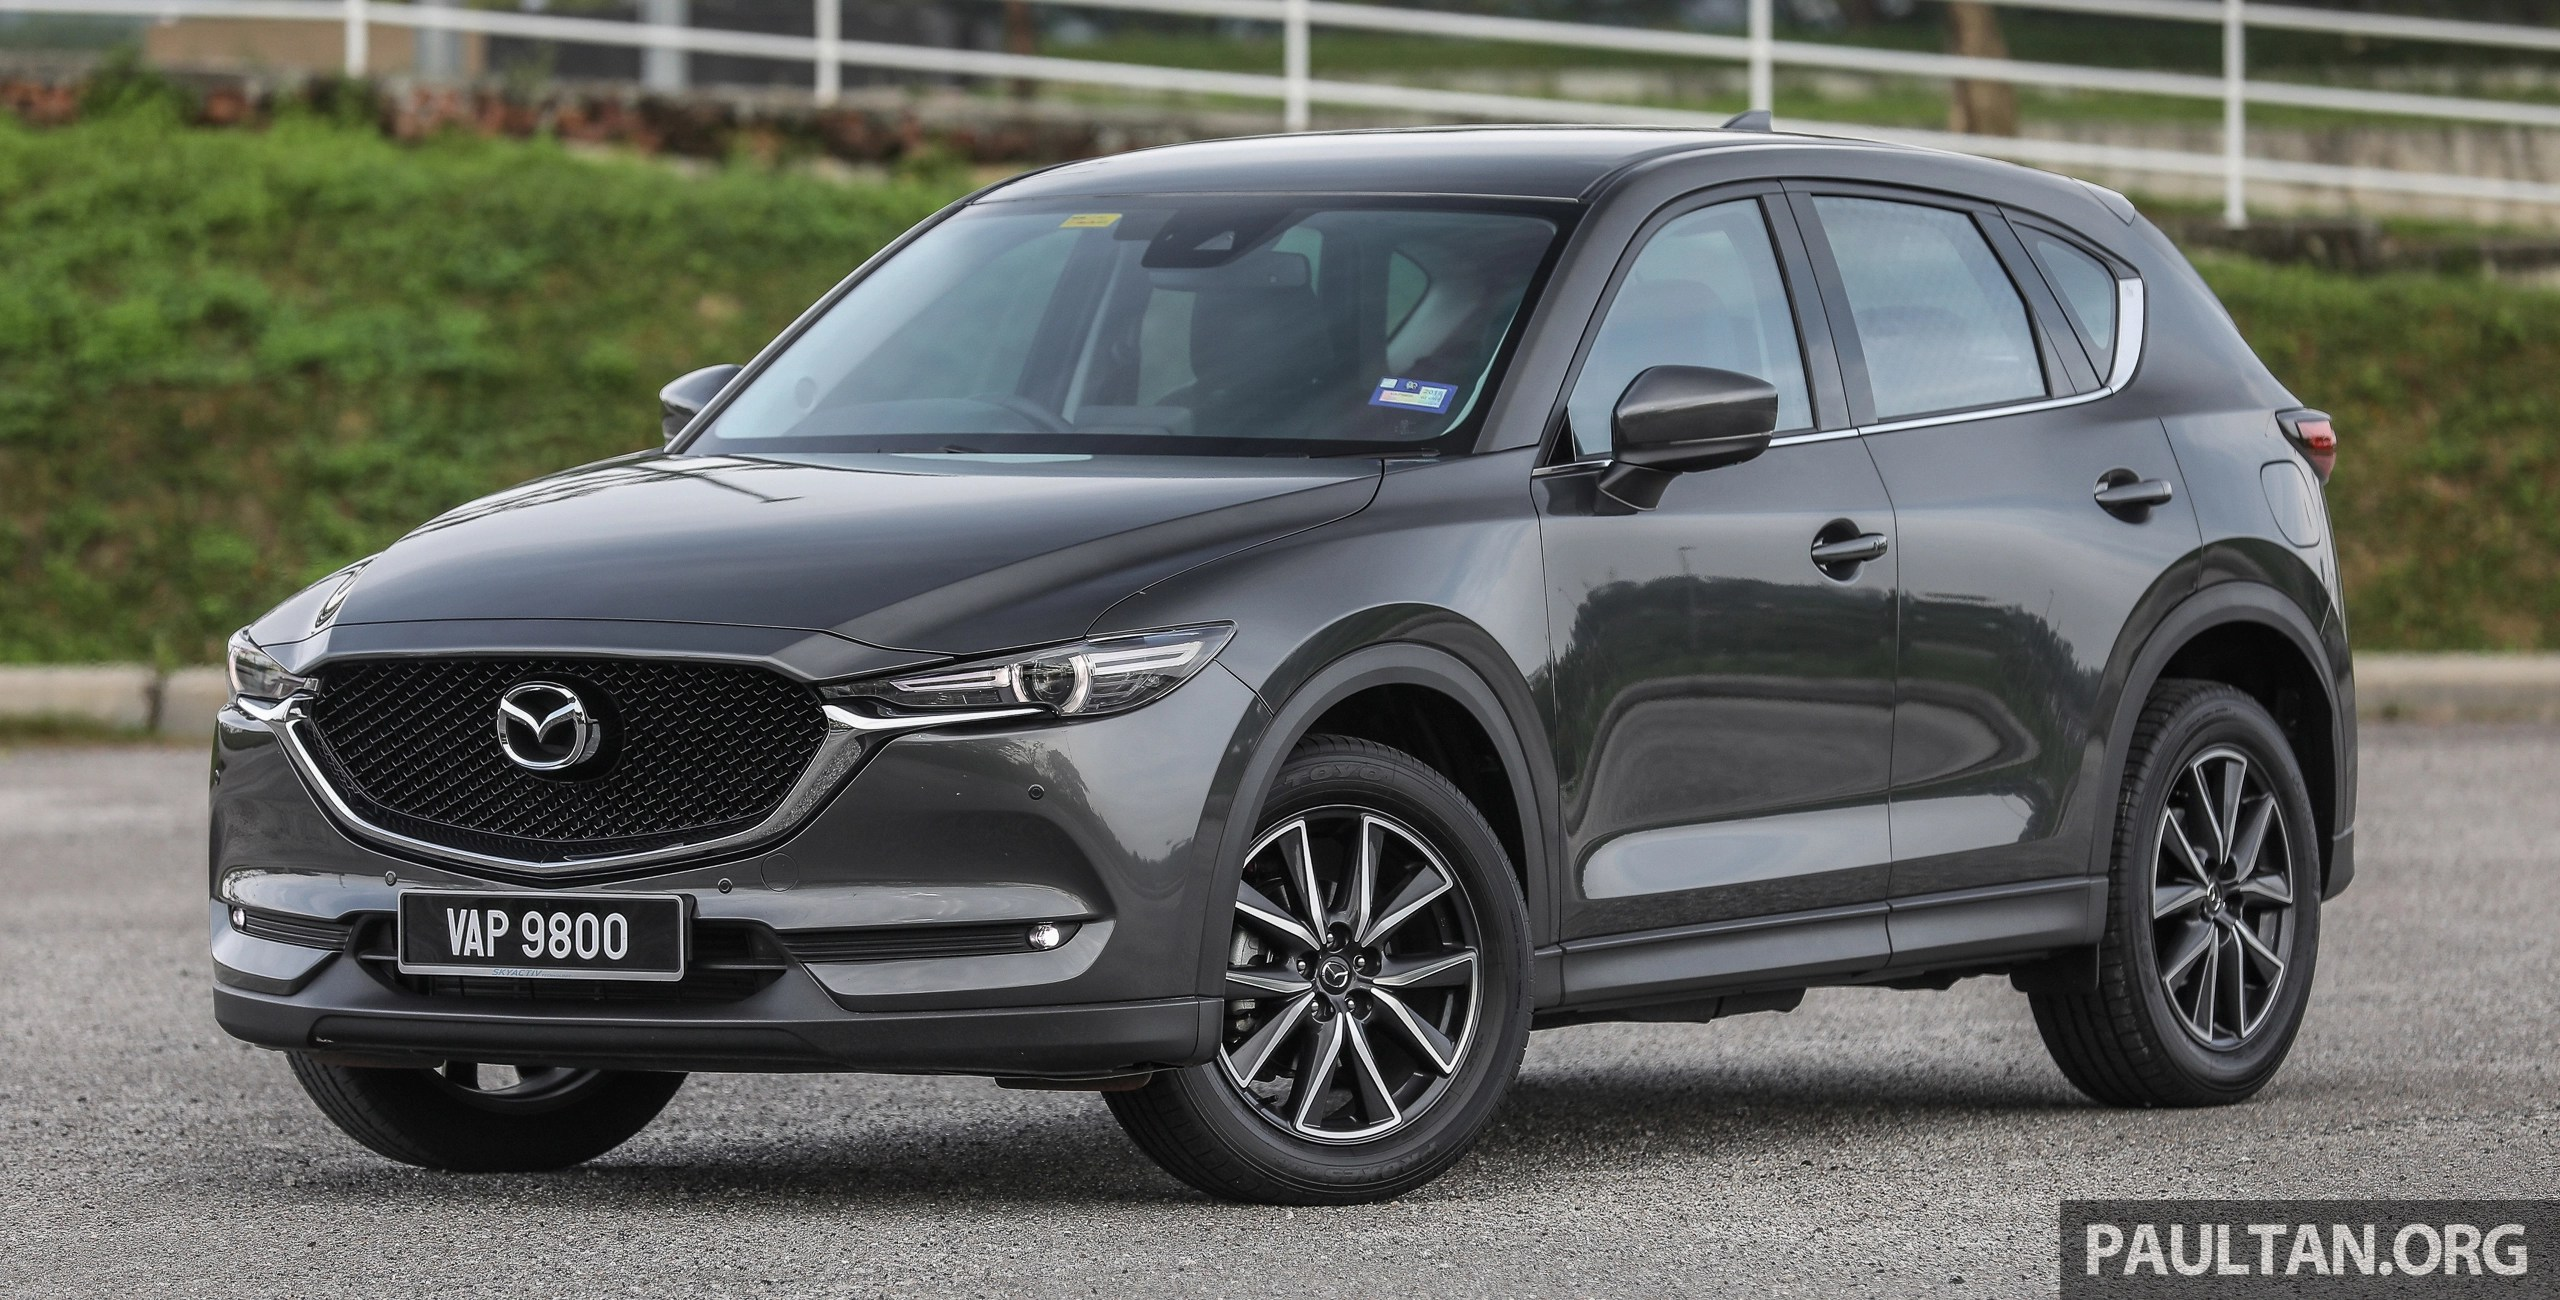 2017 Mazda CX5 2.2GLS AWD_Ext 2